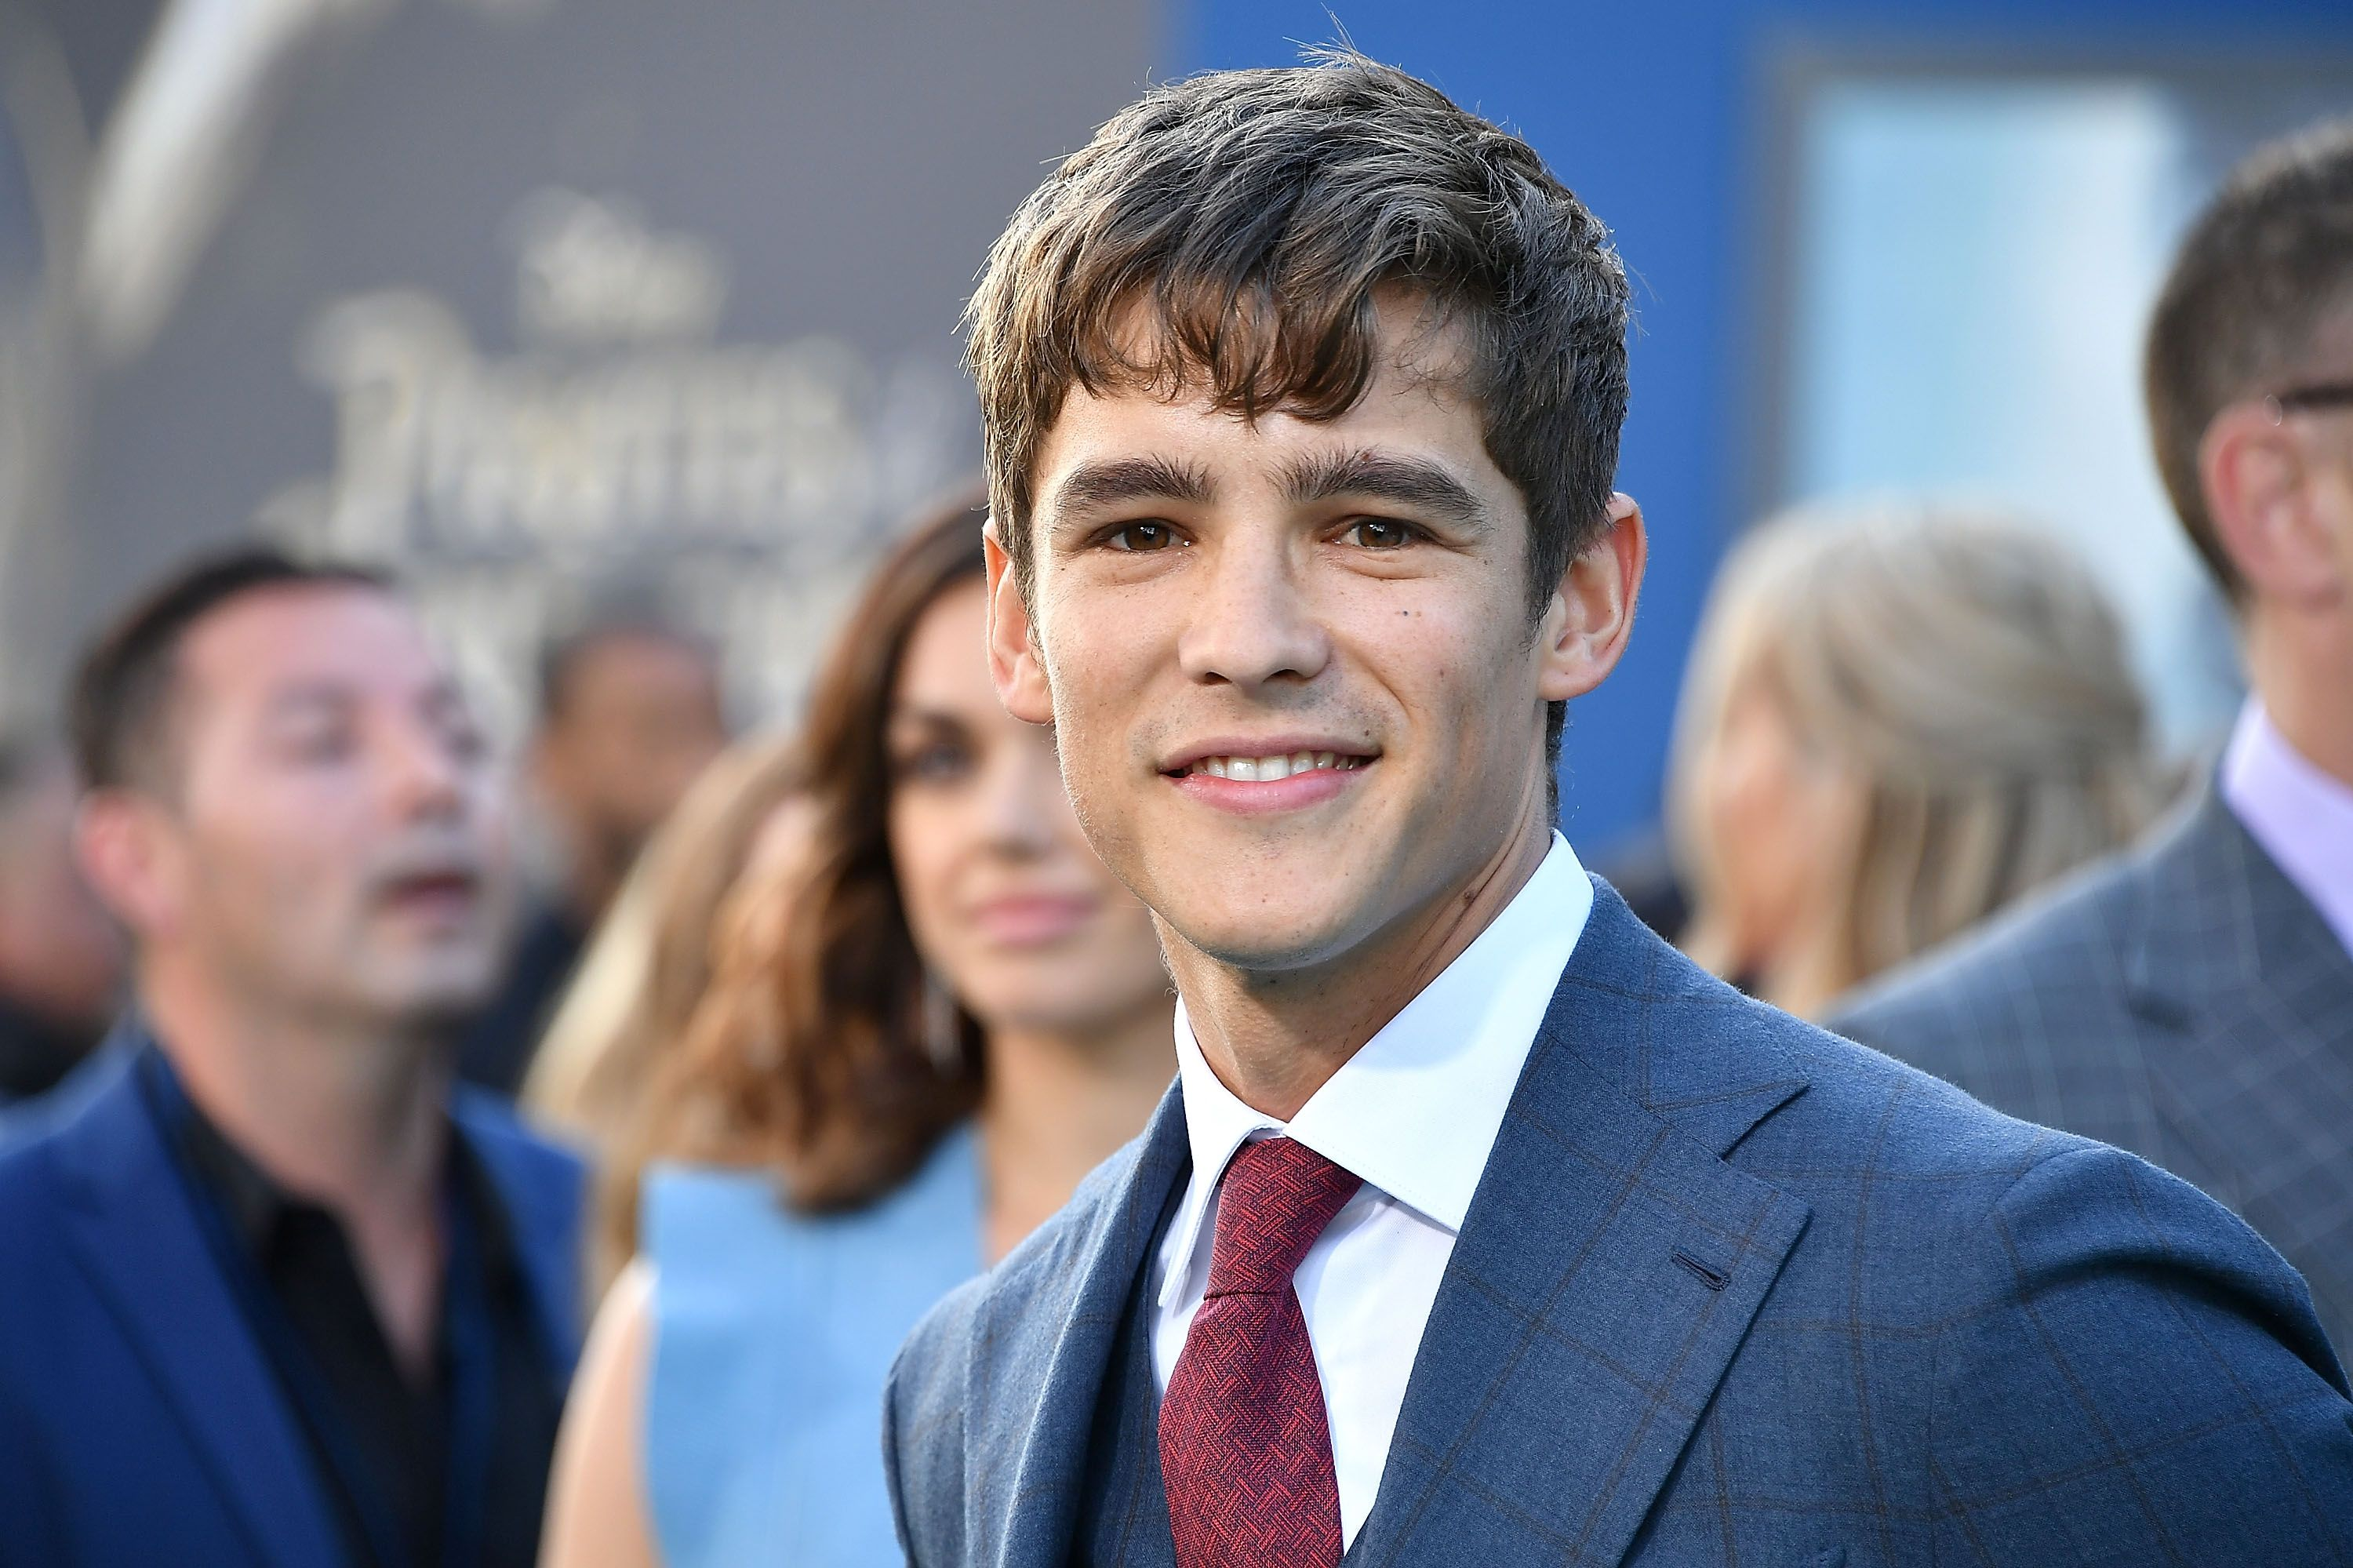 Brenton Thwaites to Star in DC Comics' New Series 'Titans'